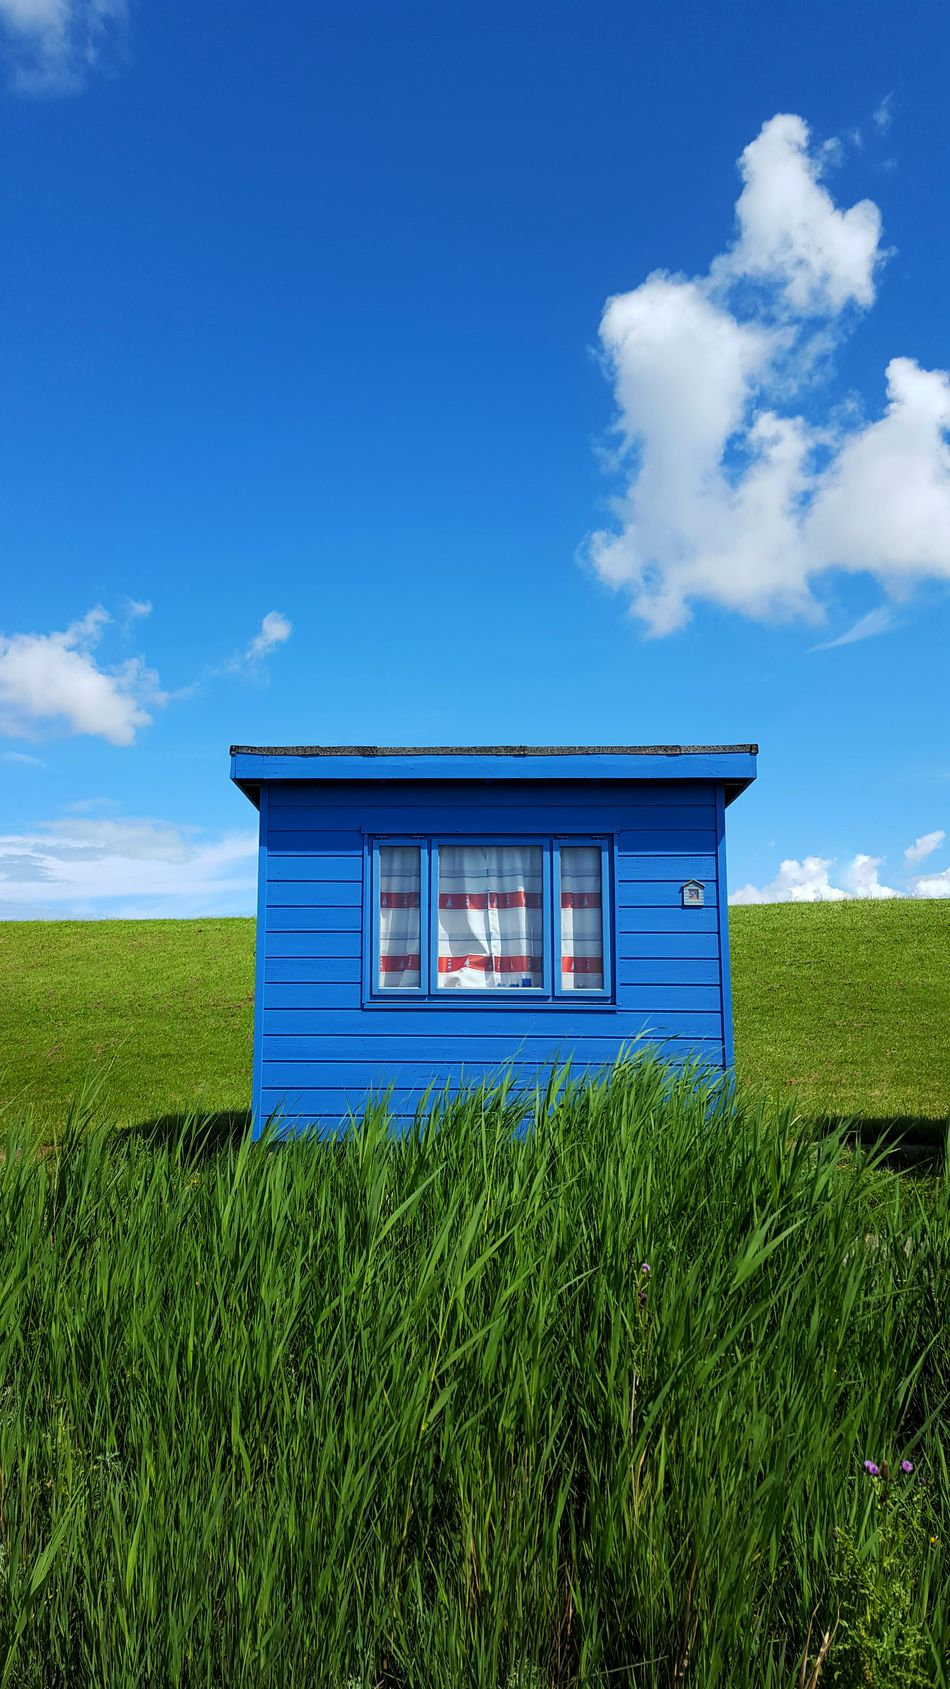 Green n blue Cloud - Sky House Grass Sky No People Building Exterior Blue Architecture Outdoors Summer Day Tranquility Clouds Landscape Rural Scene Scenics Nordsee Colourful Green Blue Bluesky Hut Shack Cloudporn EyeEmNewHere